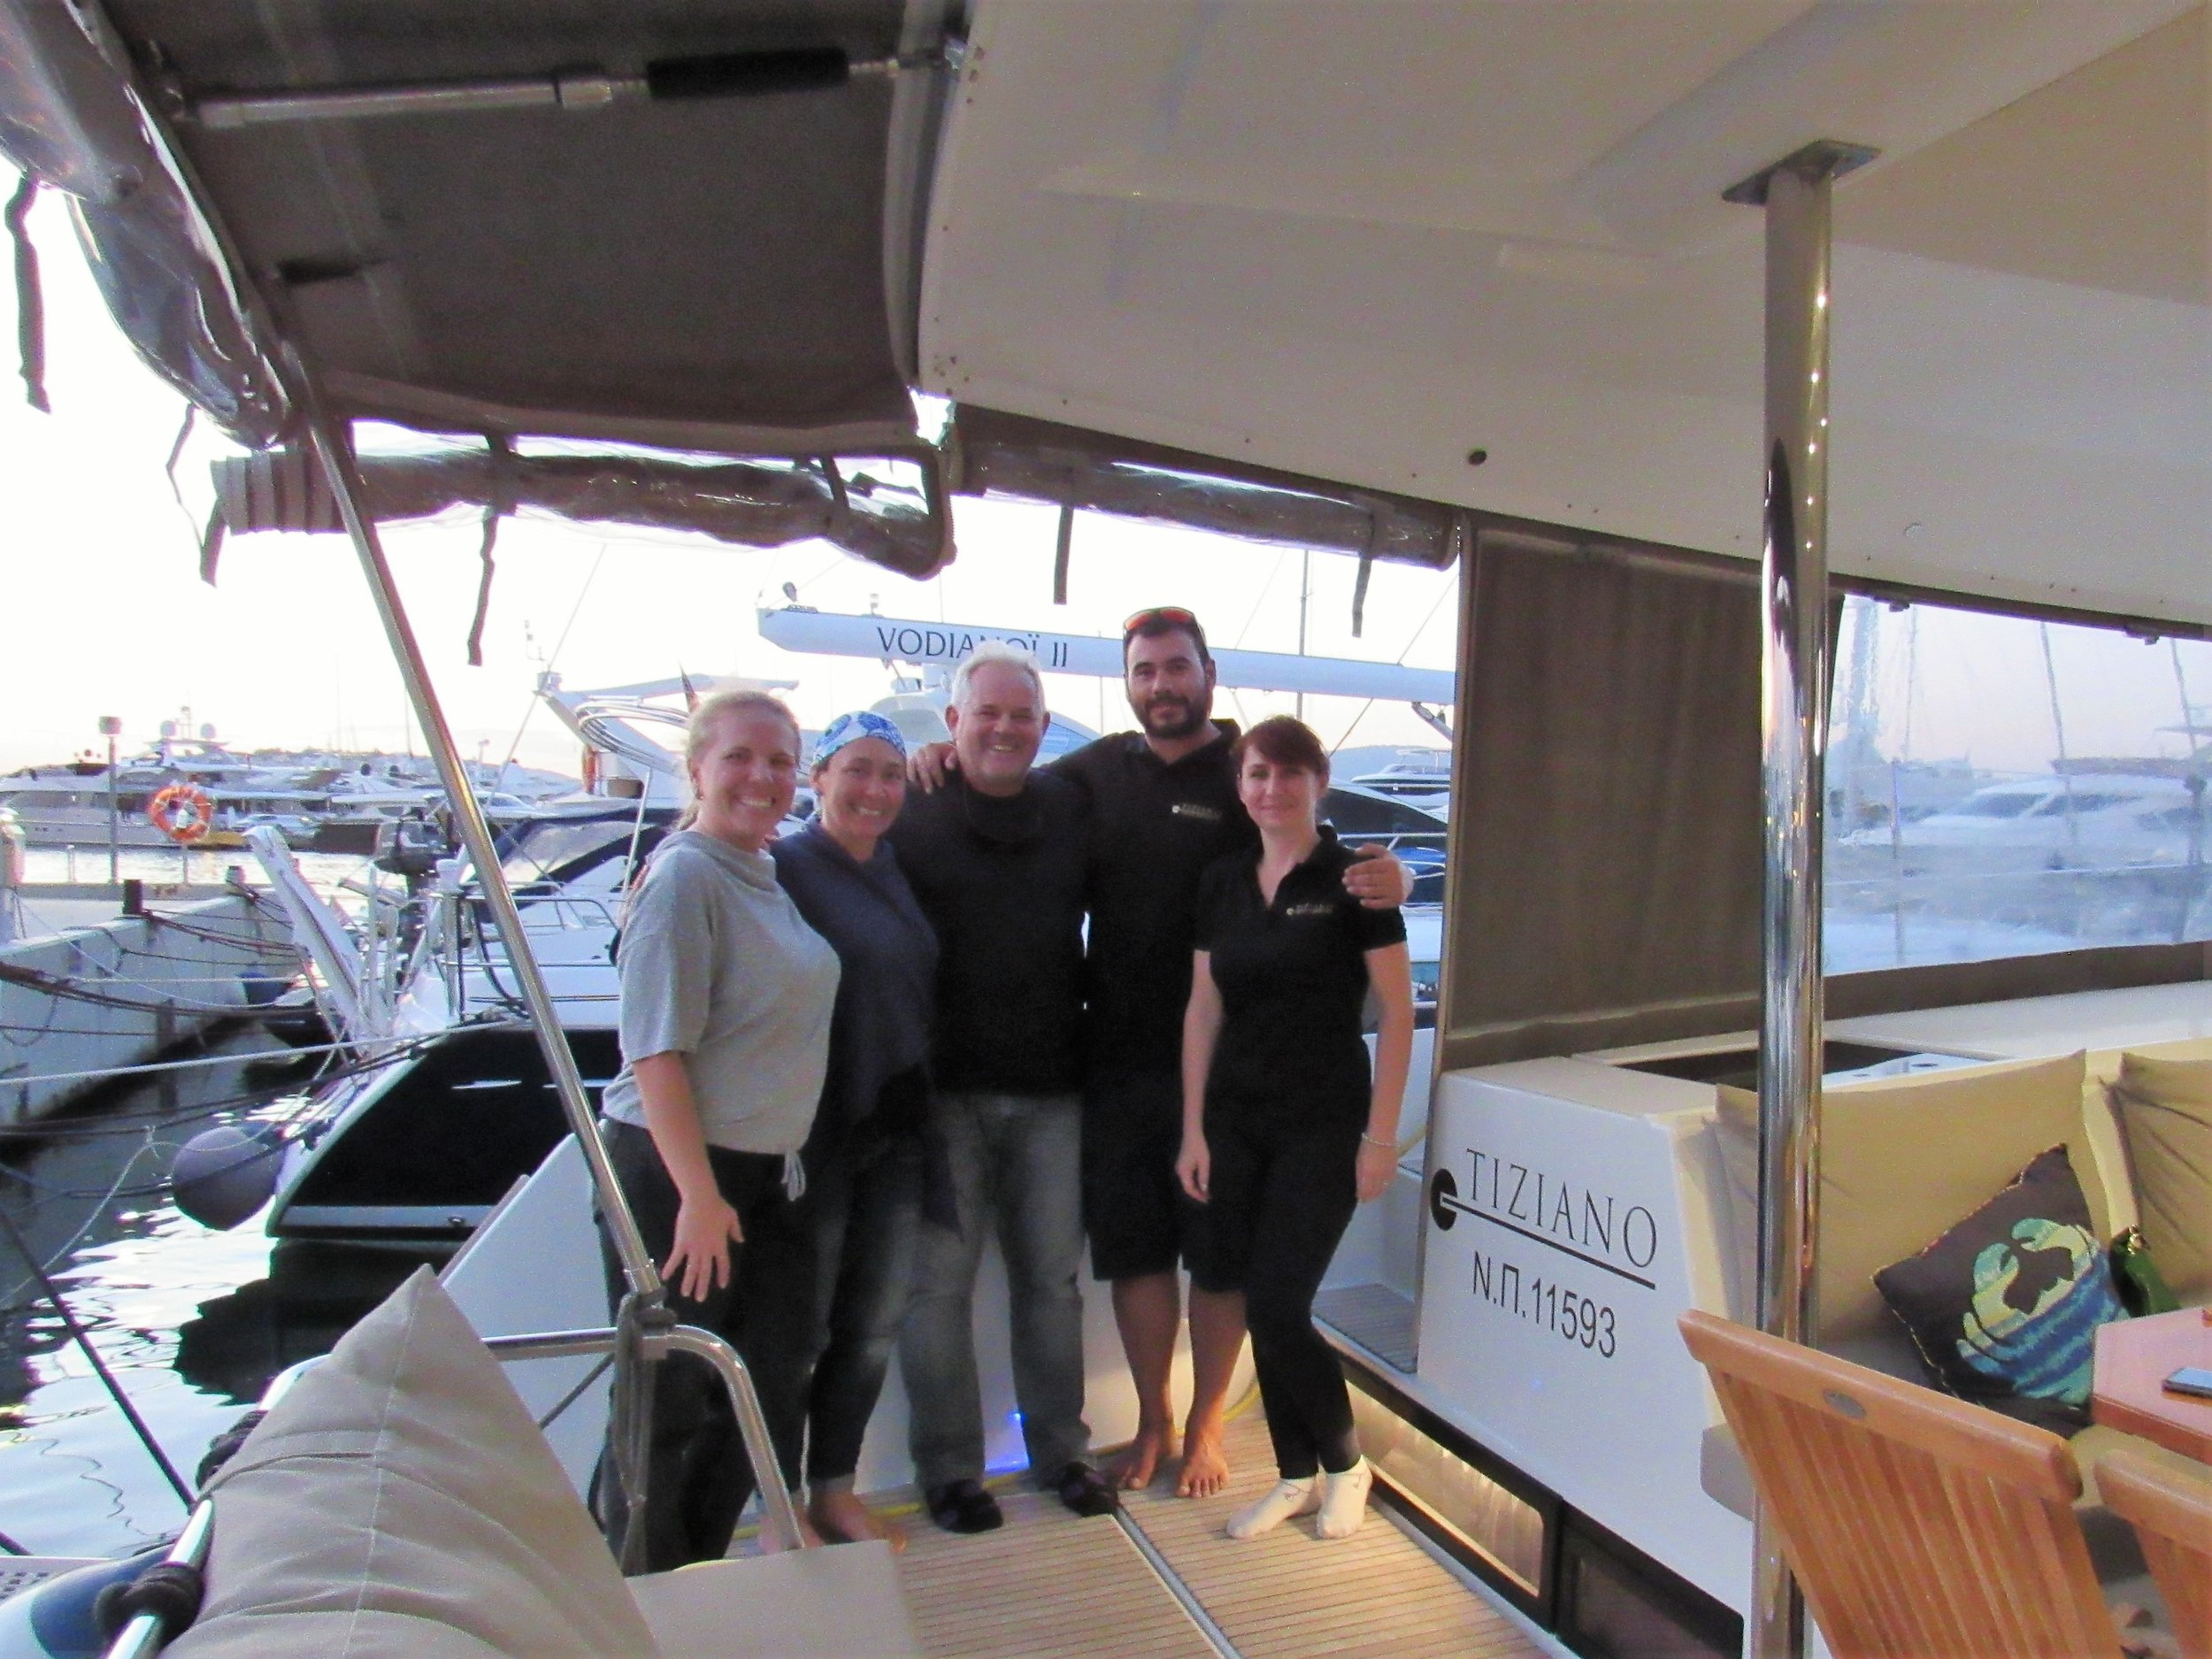 A visit and dinner with the Tiziano crew.  Flisvos Marina, Athens, Greece